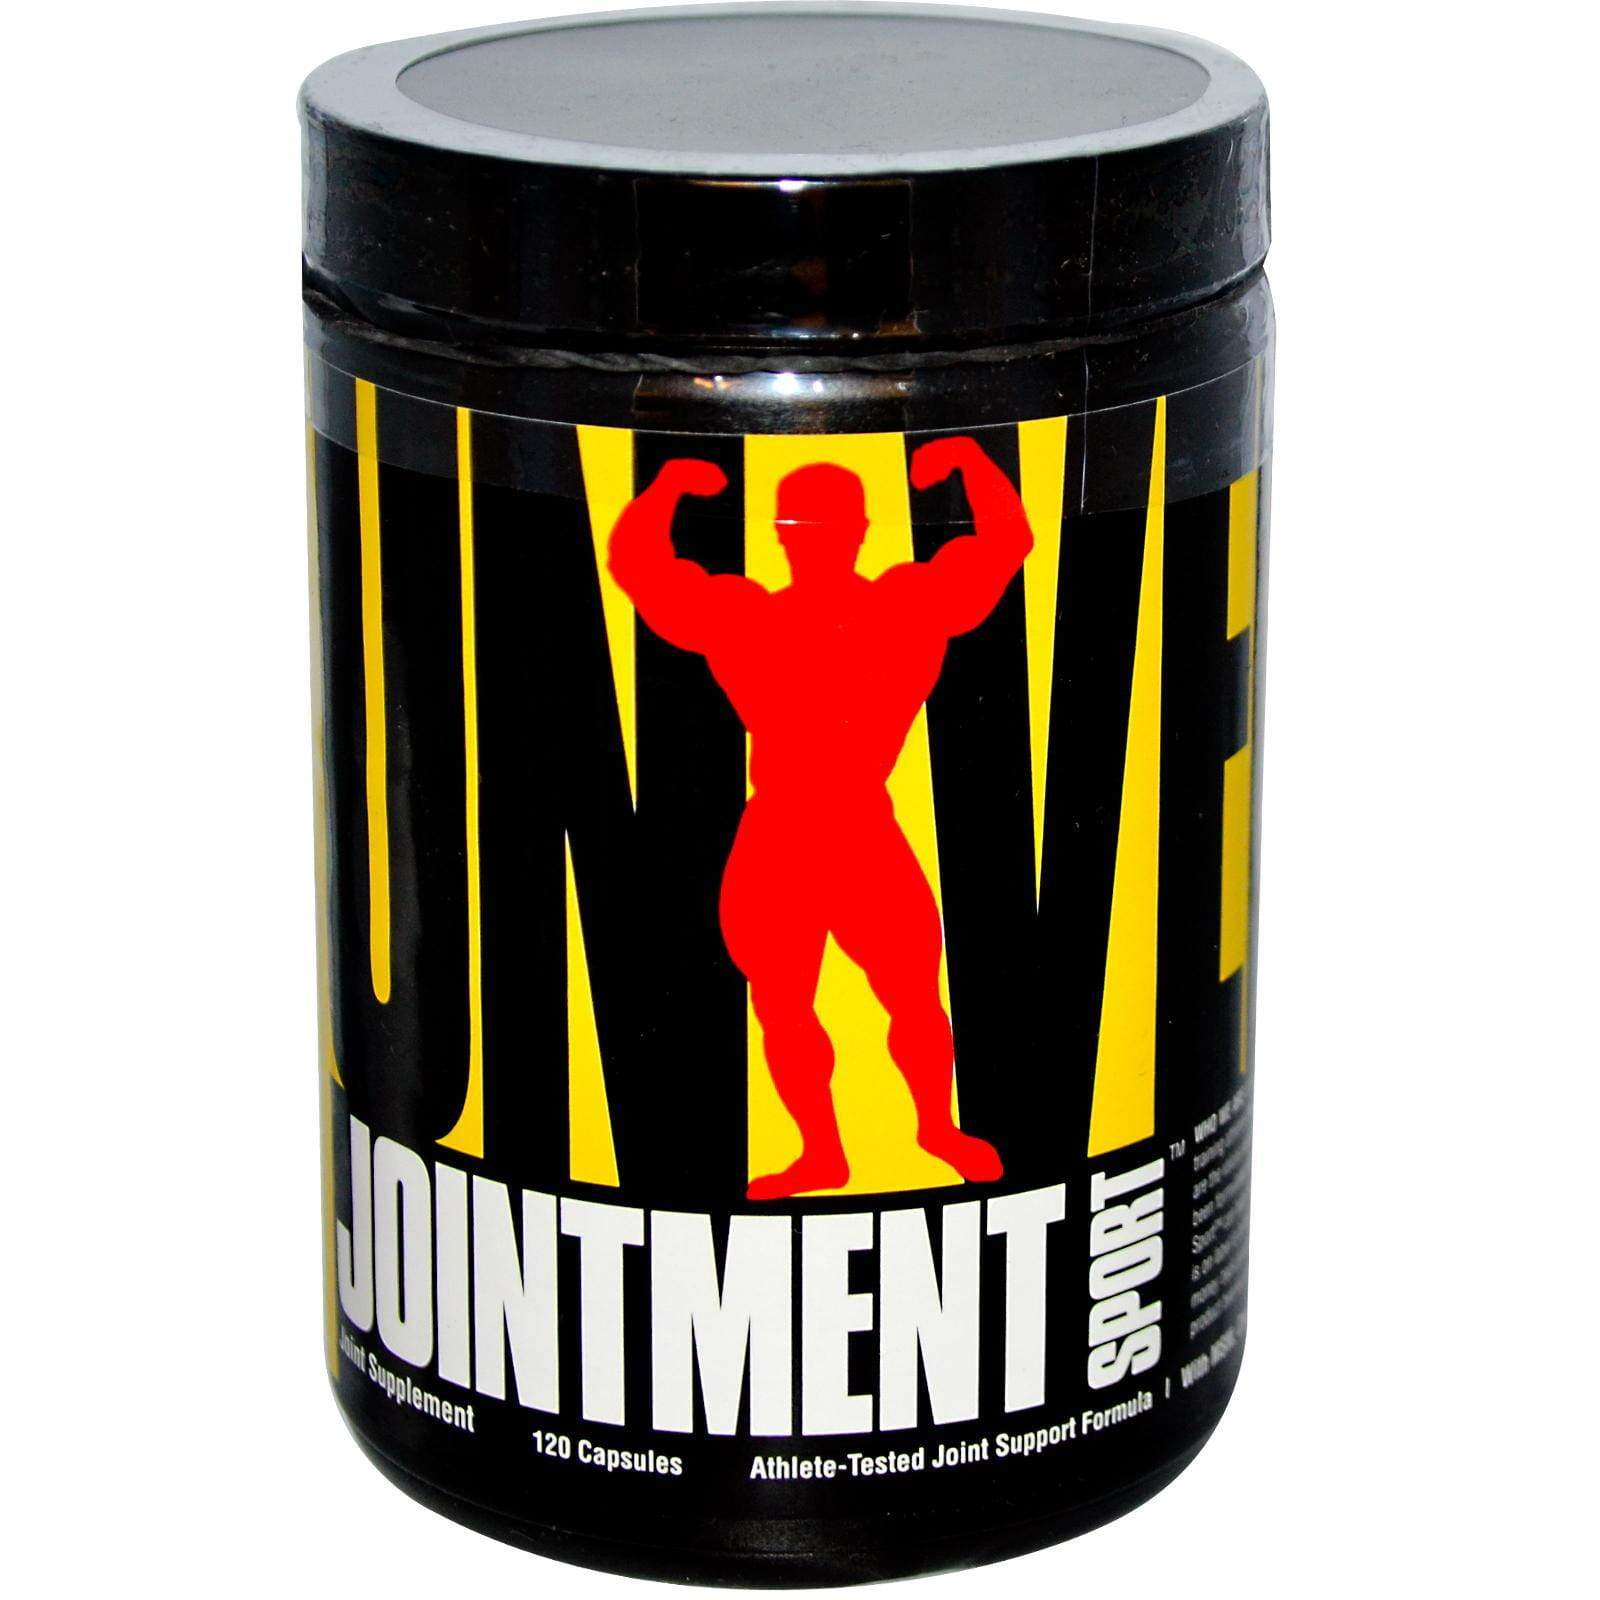 Universal Nutrition Jointment Sport 120caps